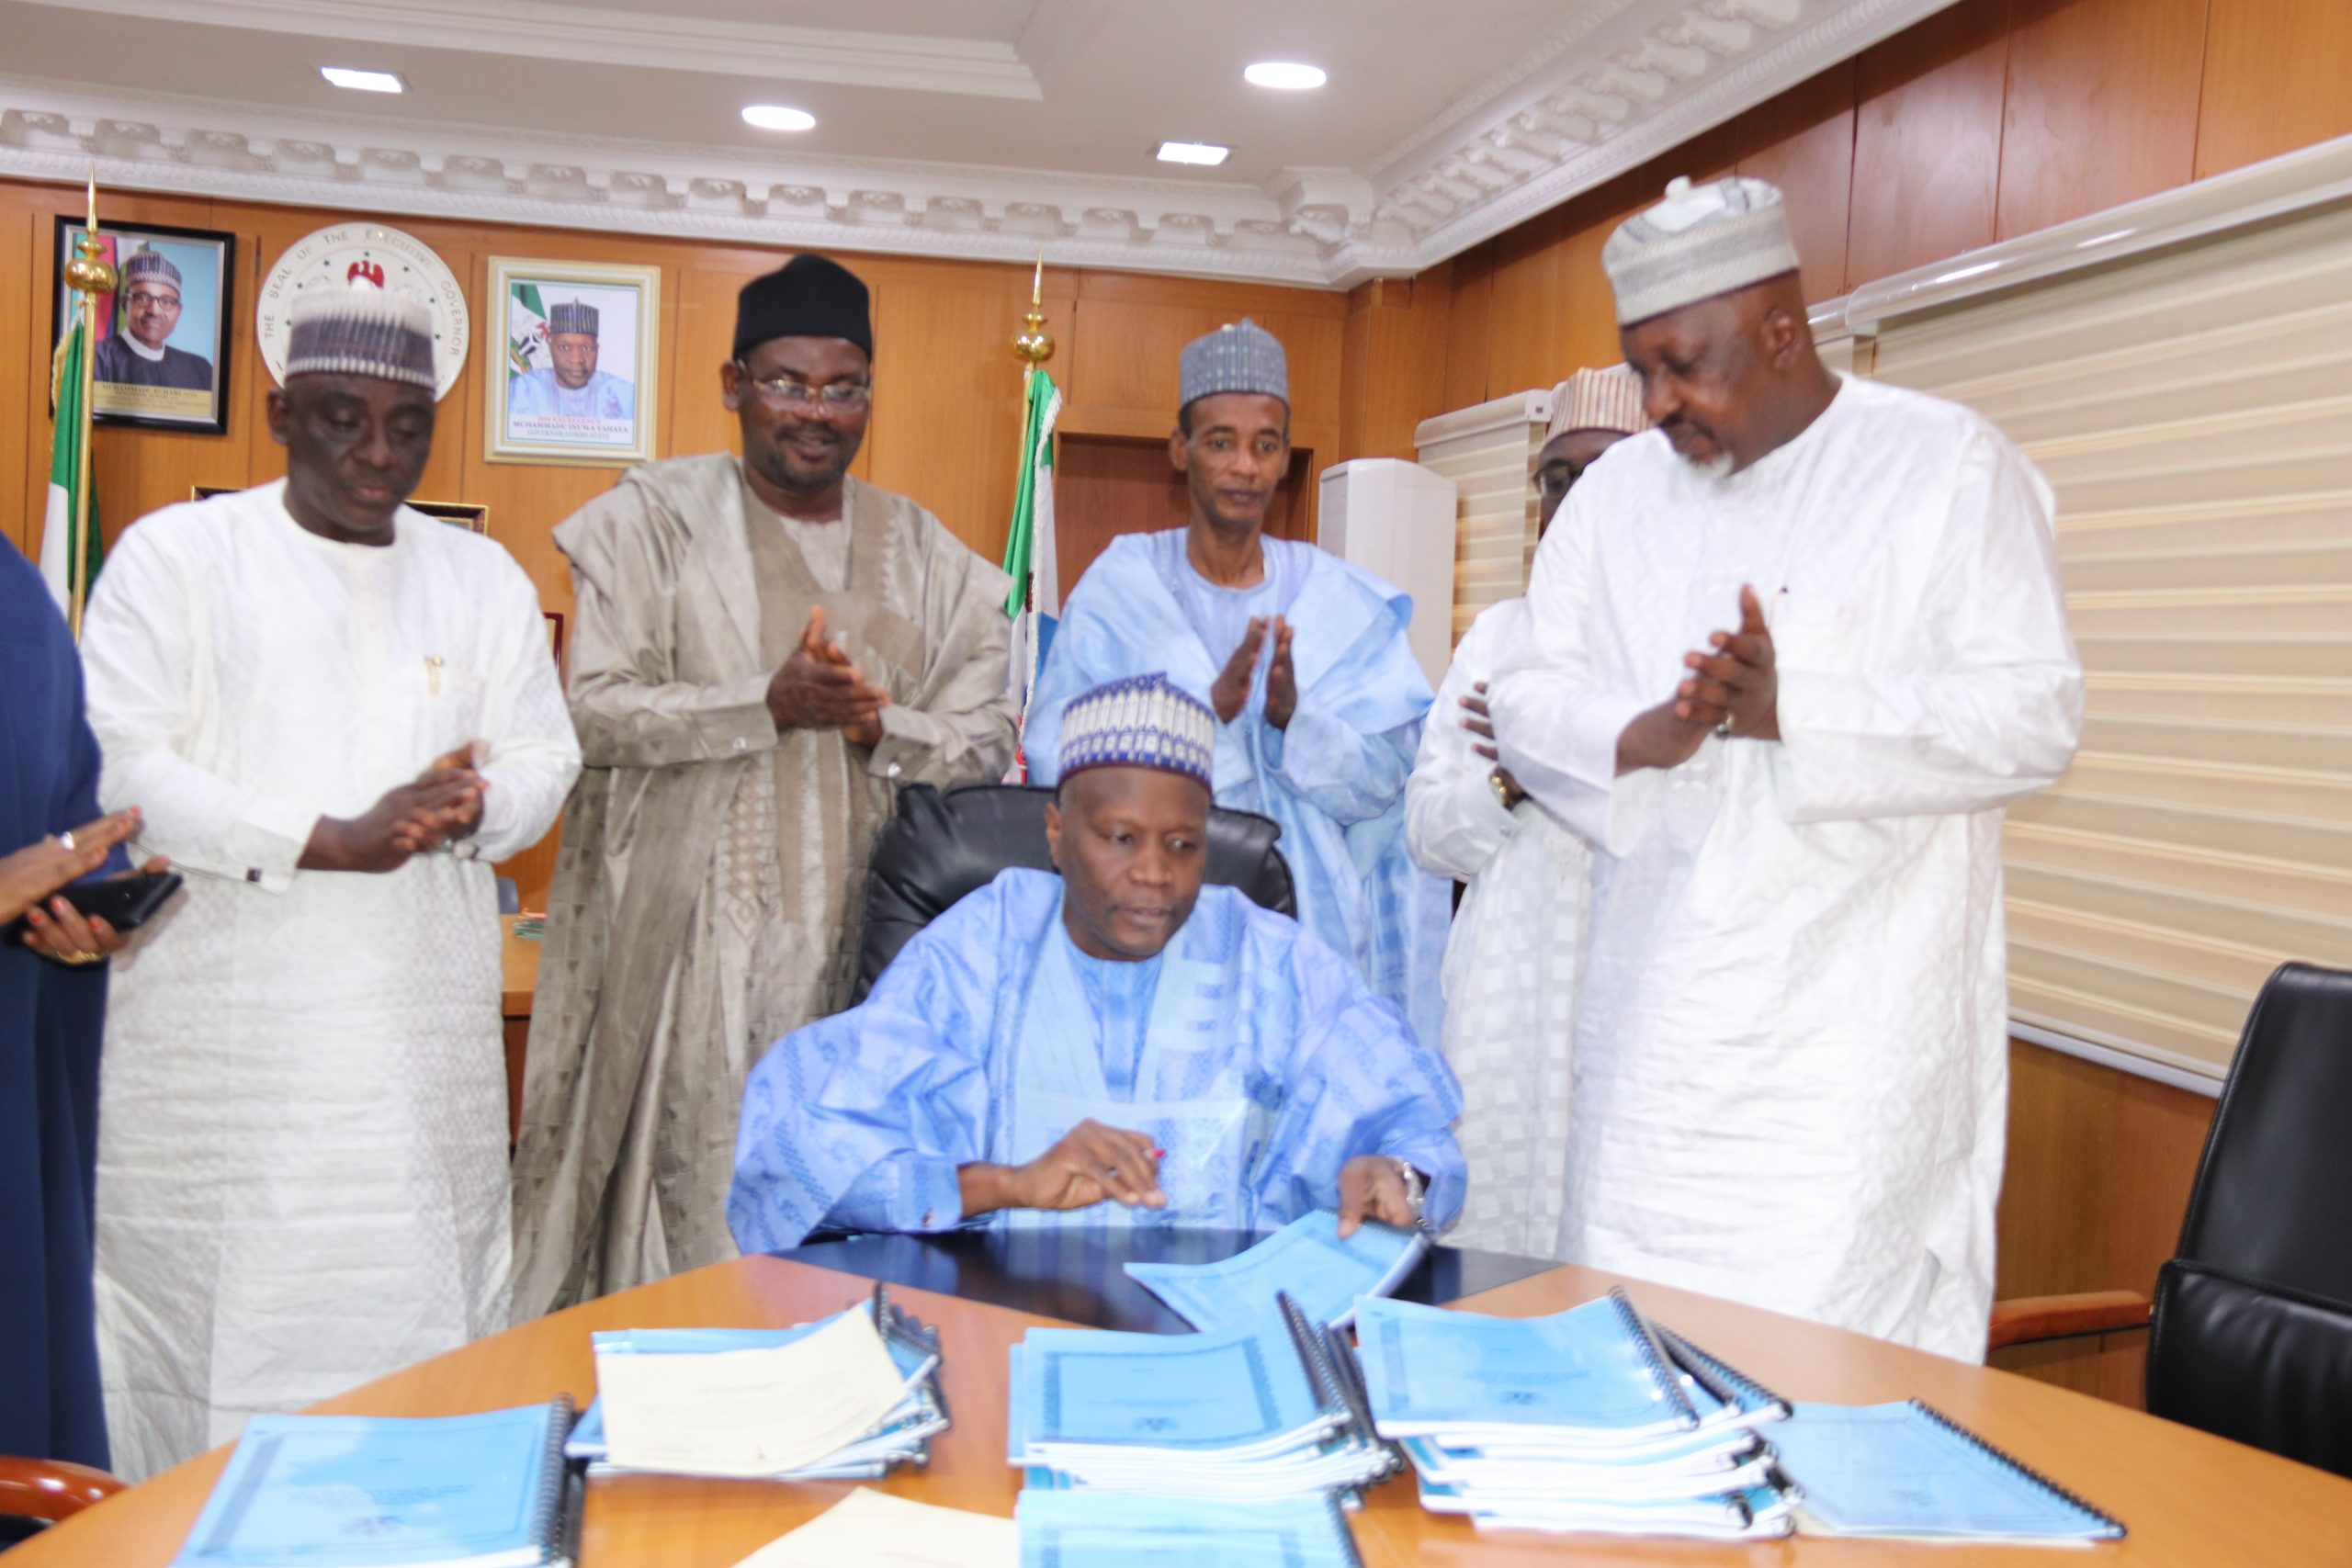 SIGNING OF GOMBE STATE PUBLIC PROCUREMENT LAW BY HIS EXCELLENCY, THE EXECUTIVE GOVERNOR OF GOMBE STATE ALHAJI MUHAMMADU INUWA YAHAYA